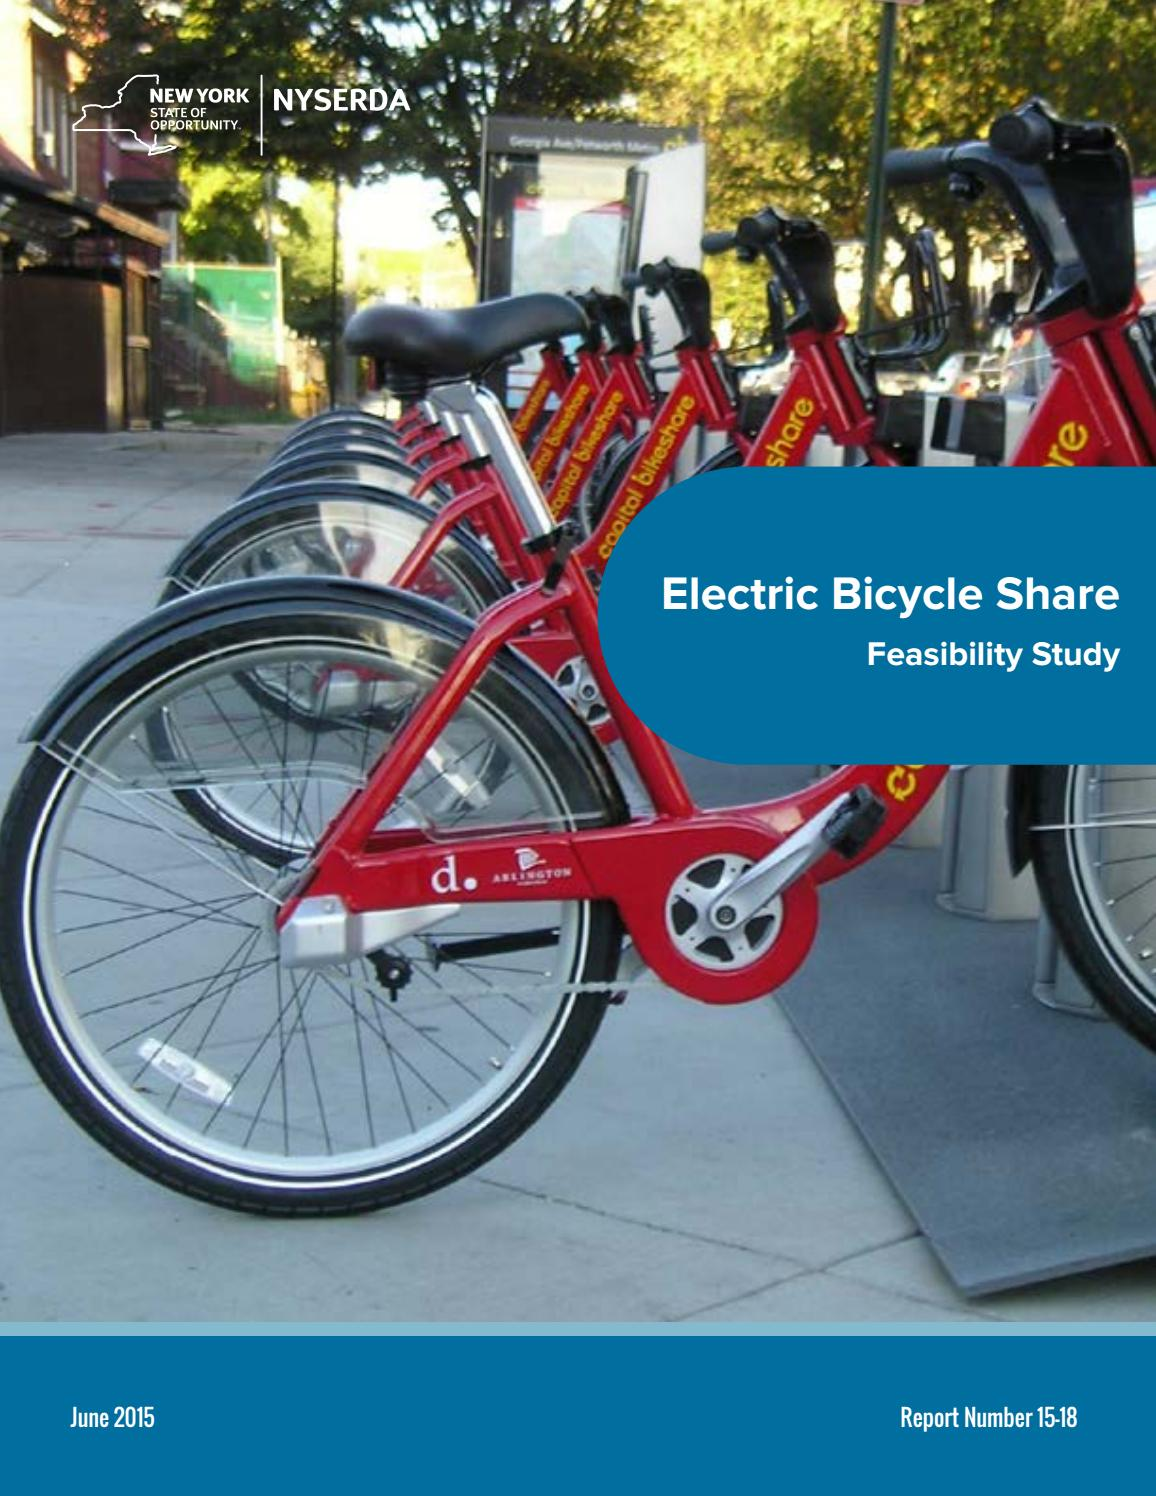 692ab73fa0 NYSERDA Electric Bicycle Share Feasibility Study by Alta Planning + Design  - issuu